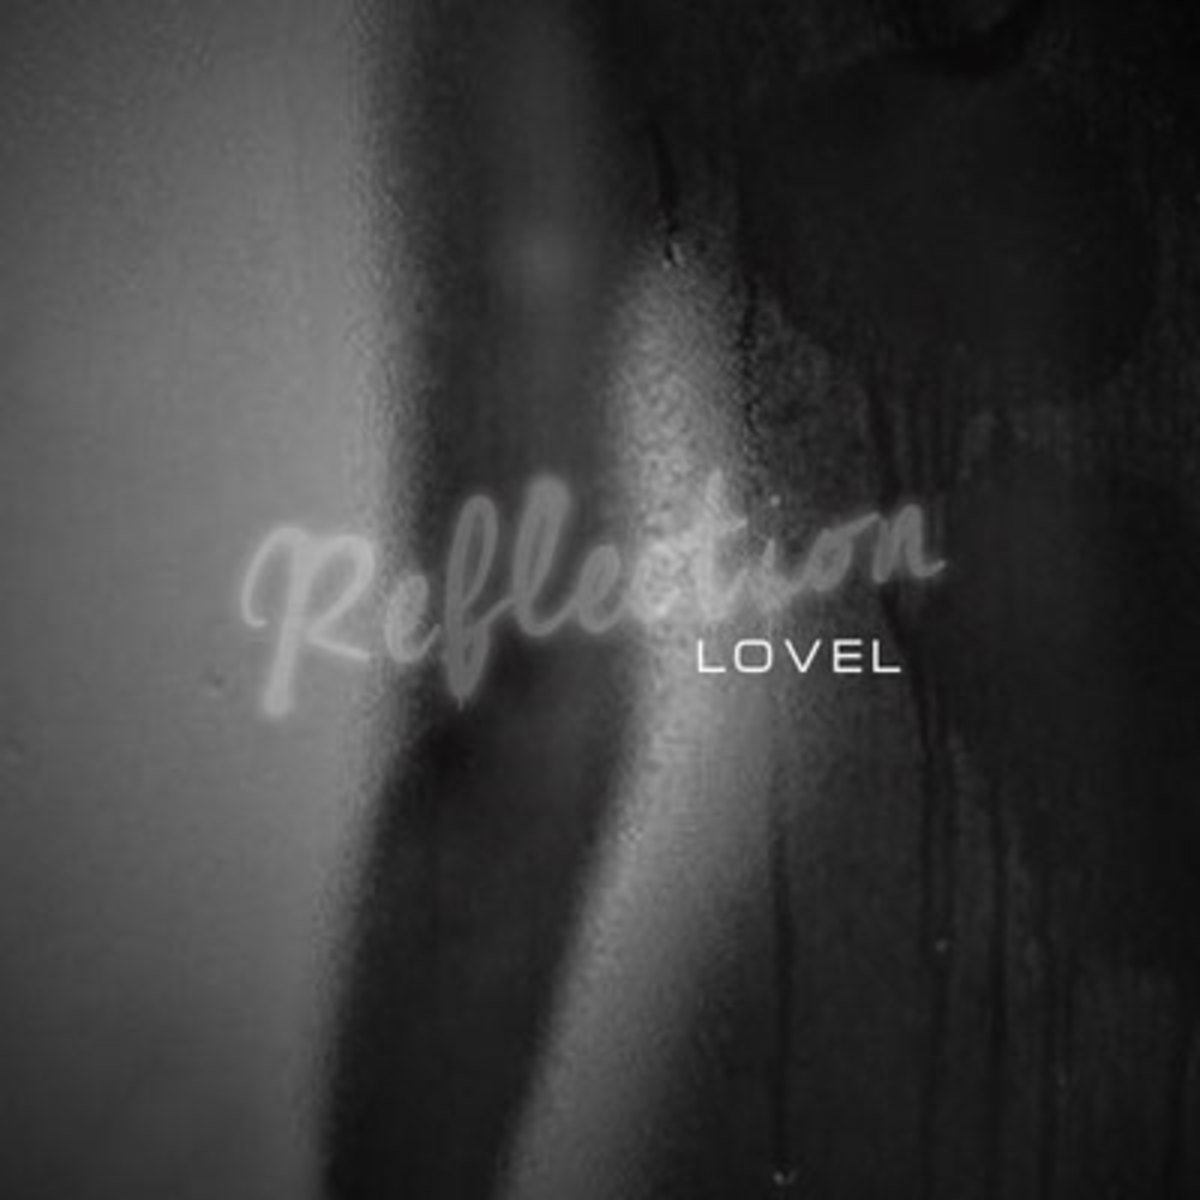 lovel-reflection.jpg